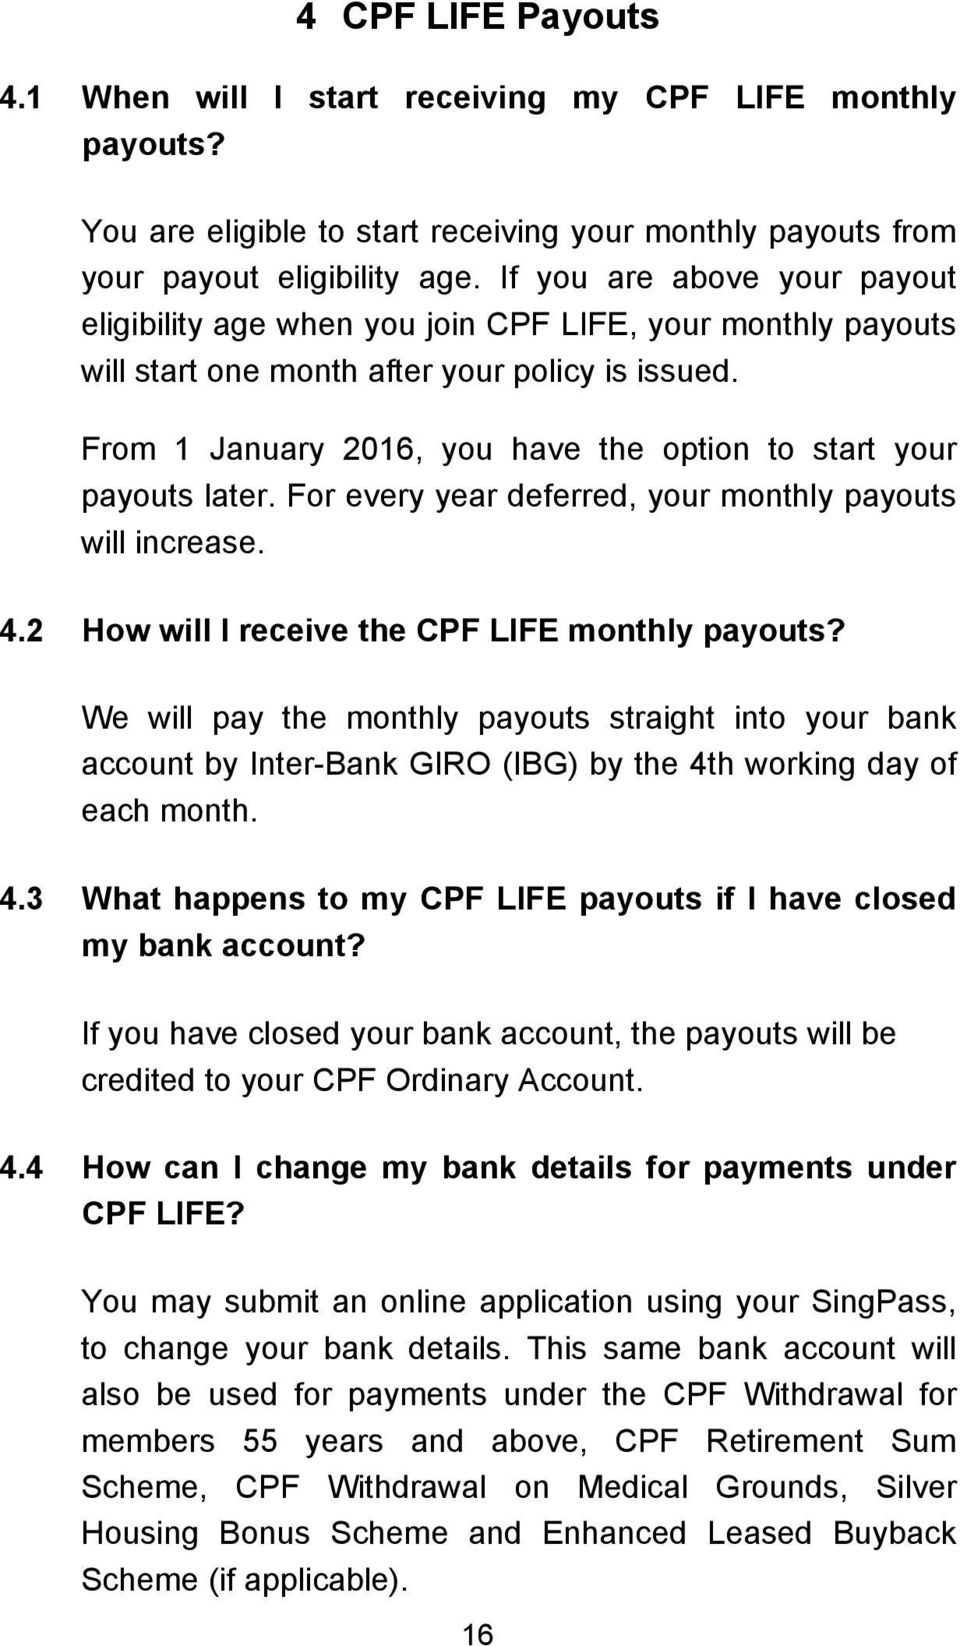 From 1 January 2016, you have the option to start your payouts later. For every year deferred, your monthly payouts will increase. 4.2 How will I receive the CPF LIFE monthly payouts?